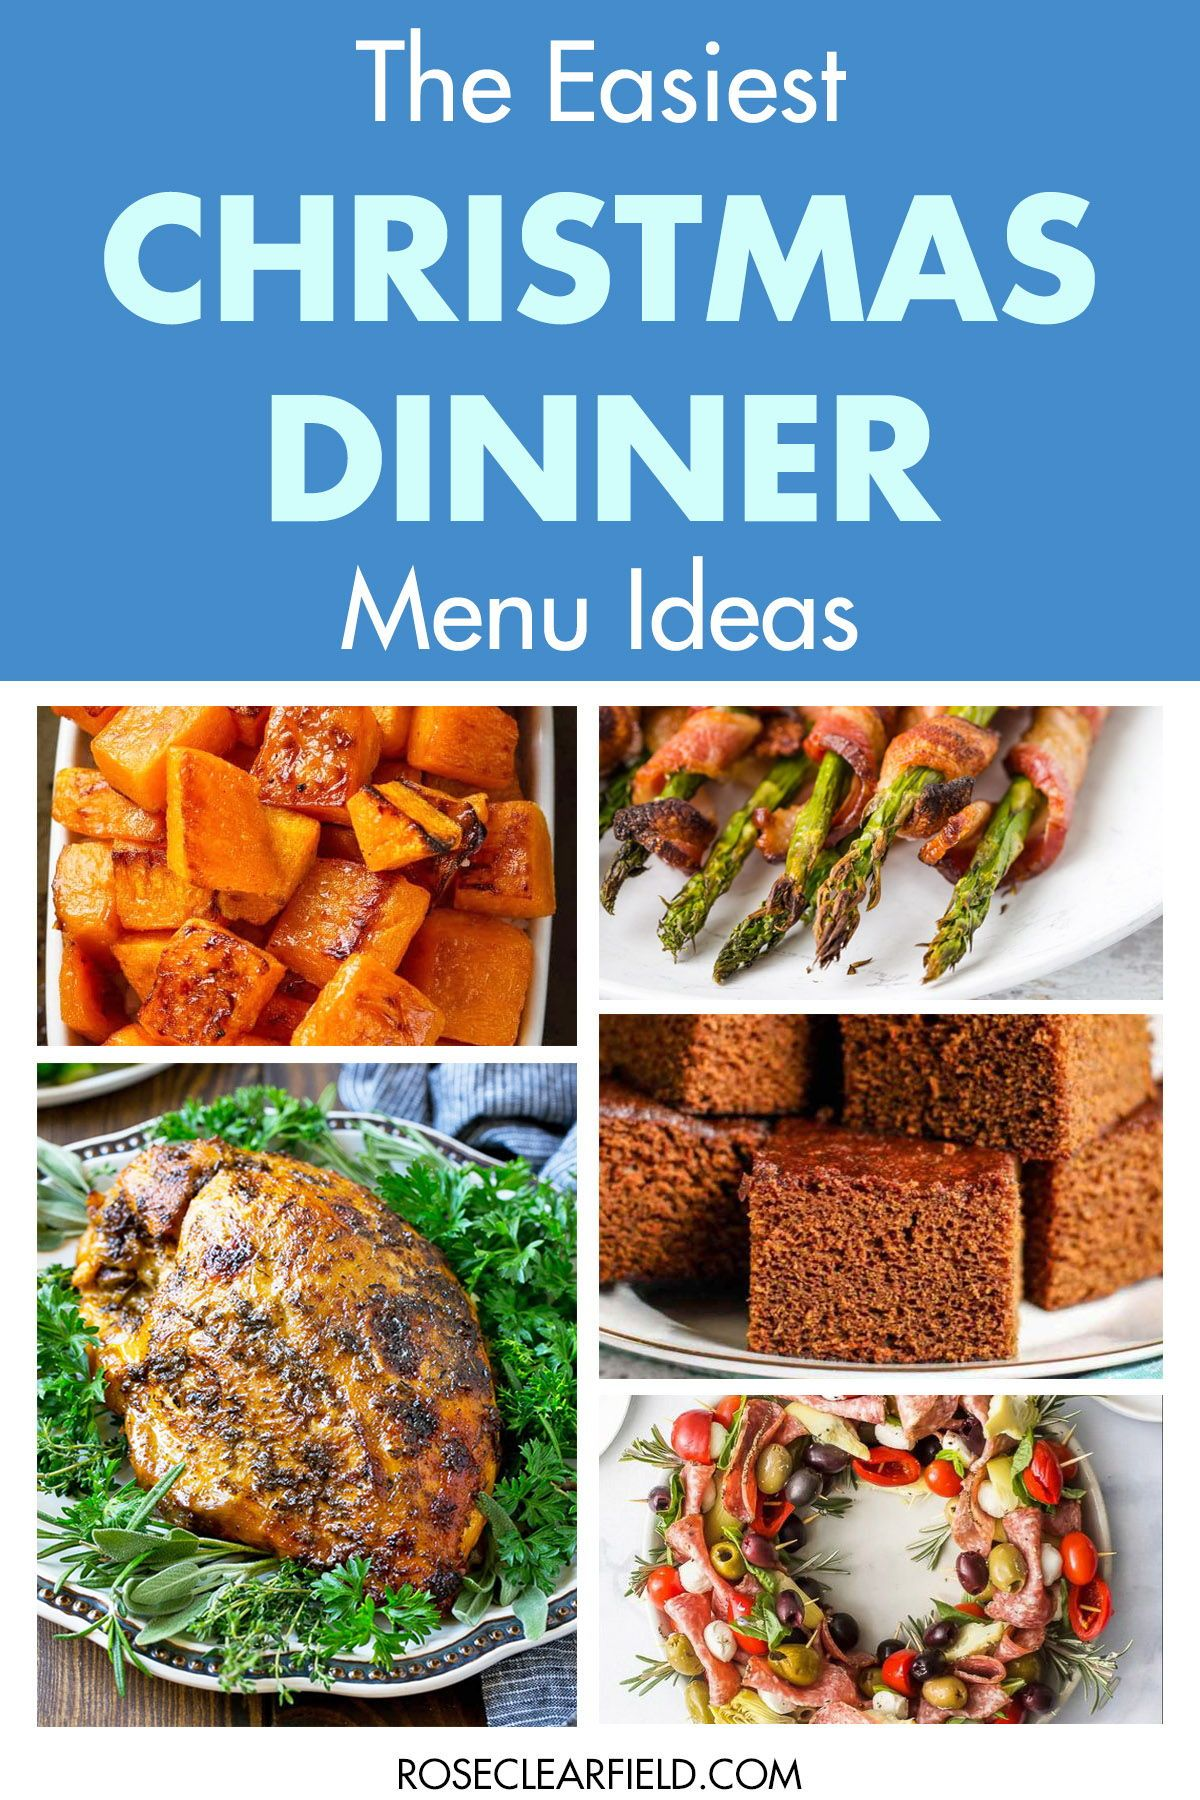 The easiest Christmas dinner menu ideas to create a delicious holiday meal without spending hours in the kitchen! #Christmasdinner #holidaydinnermenu #easyholidaydinnerideas